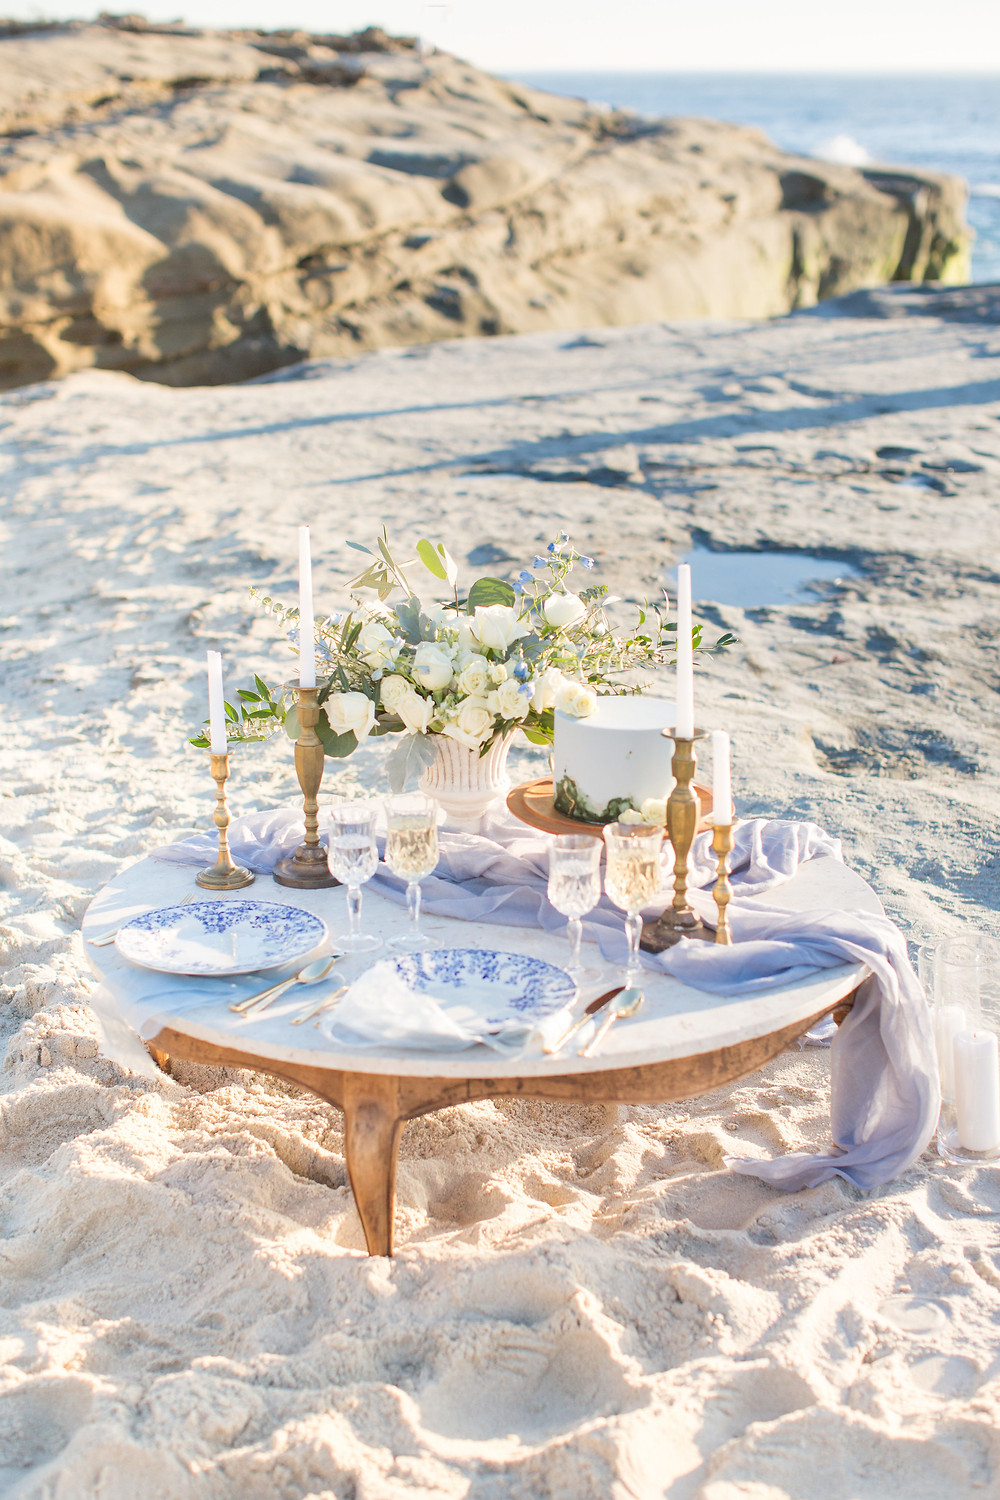 Intimate, romantic and elegant beach picnic setup for micro wedding or elopement with flowers by San Diego Wedding and Elopement Florist, Le Champagne projects at Windansea beach in La Jolla, CA. Eucalyptus and white roses paired with blue decor to mimc the ocean